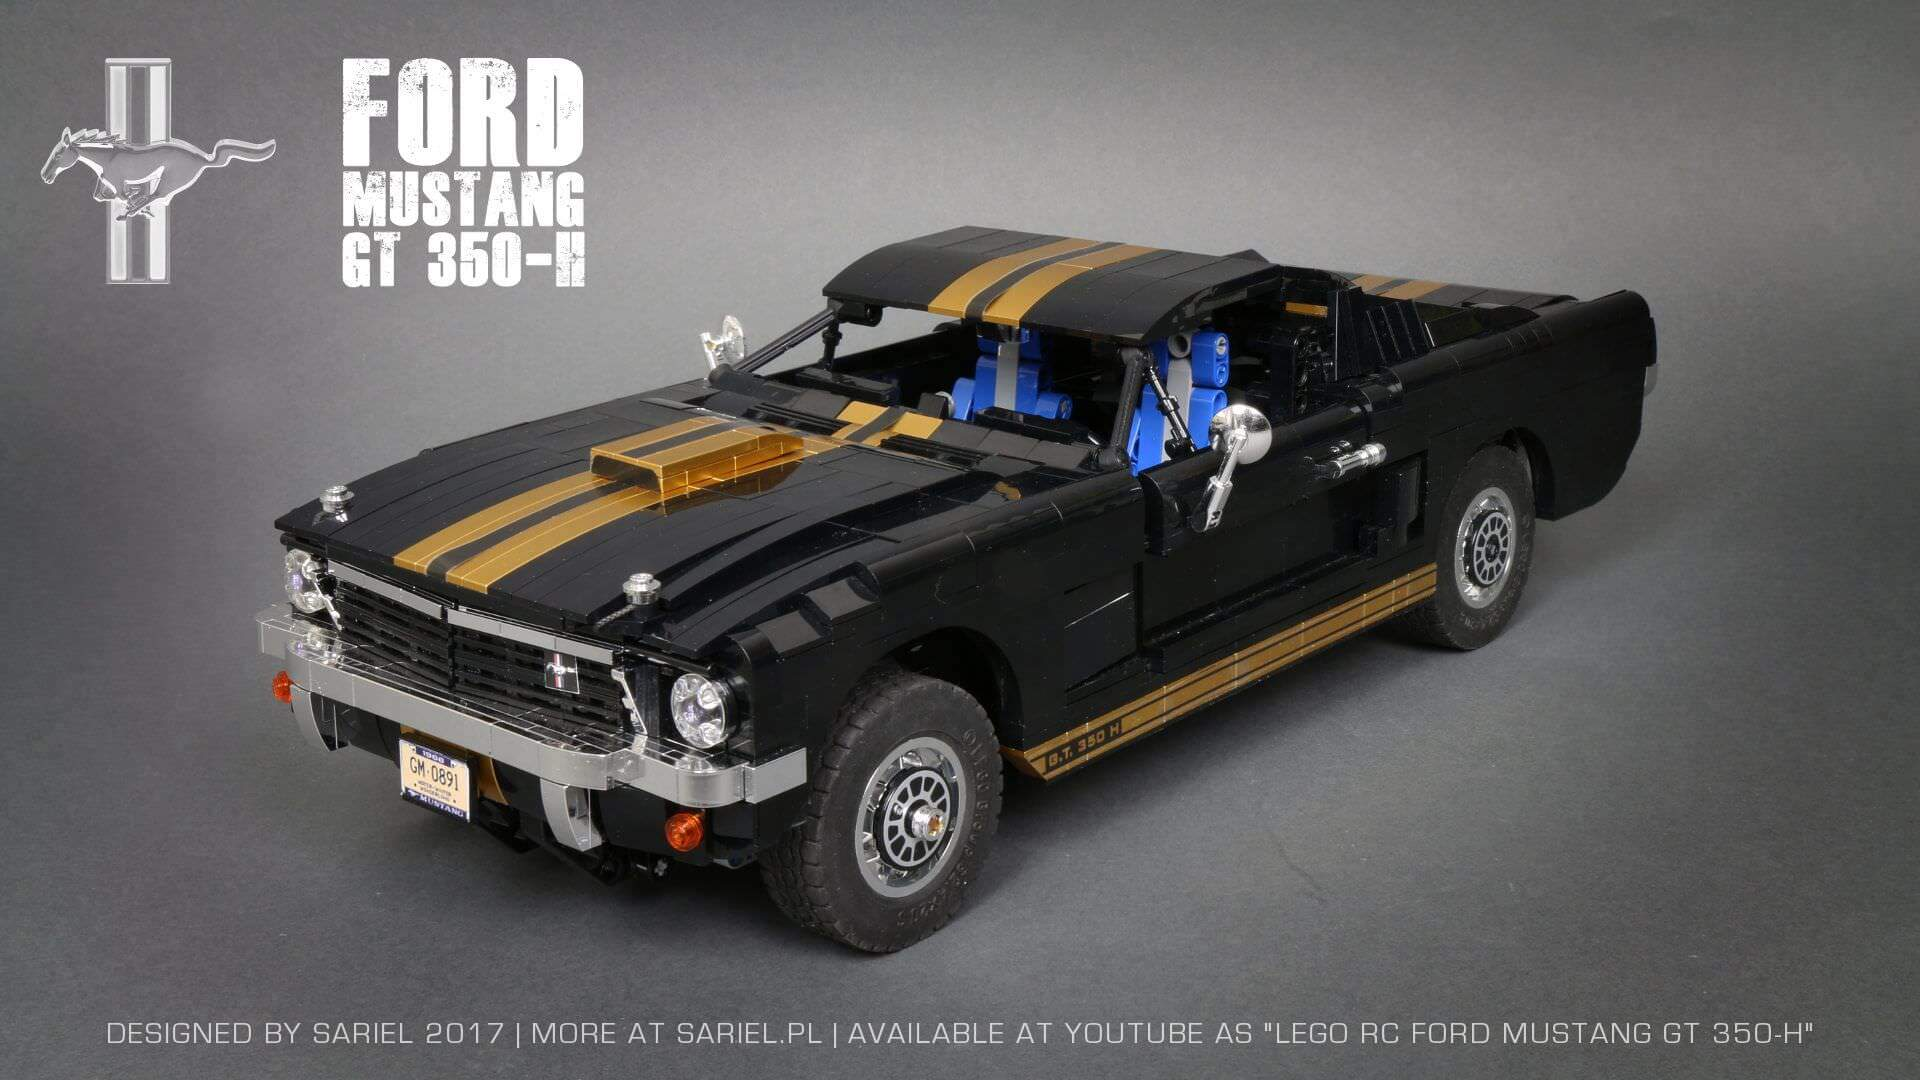 1000 shelbymustanggt350hlego